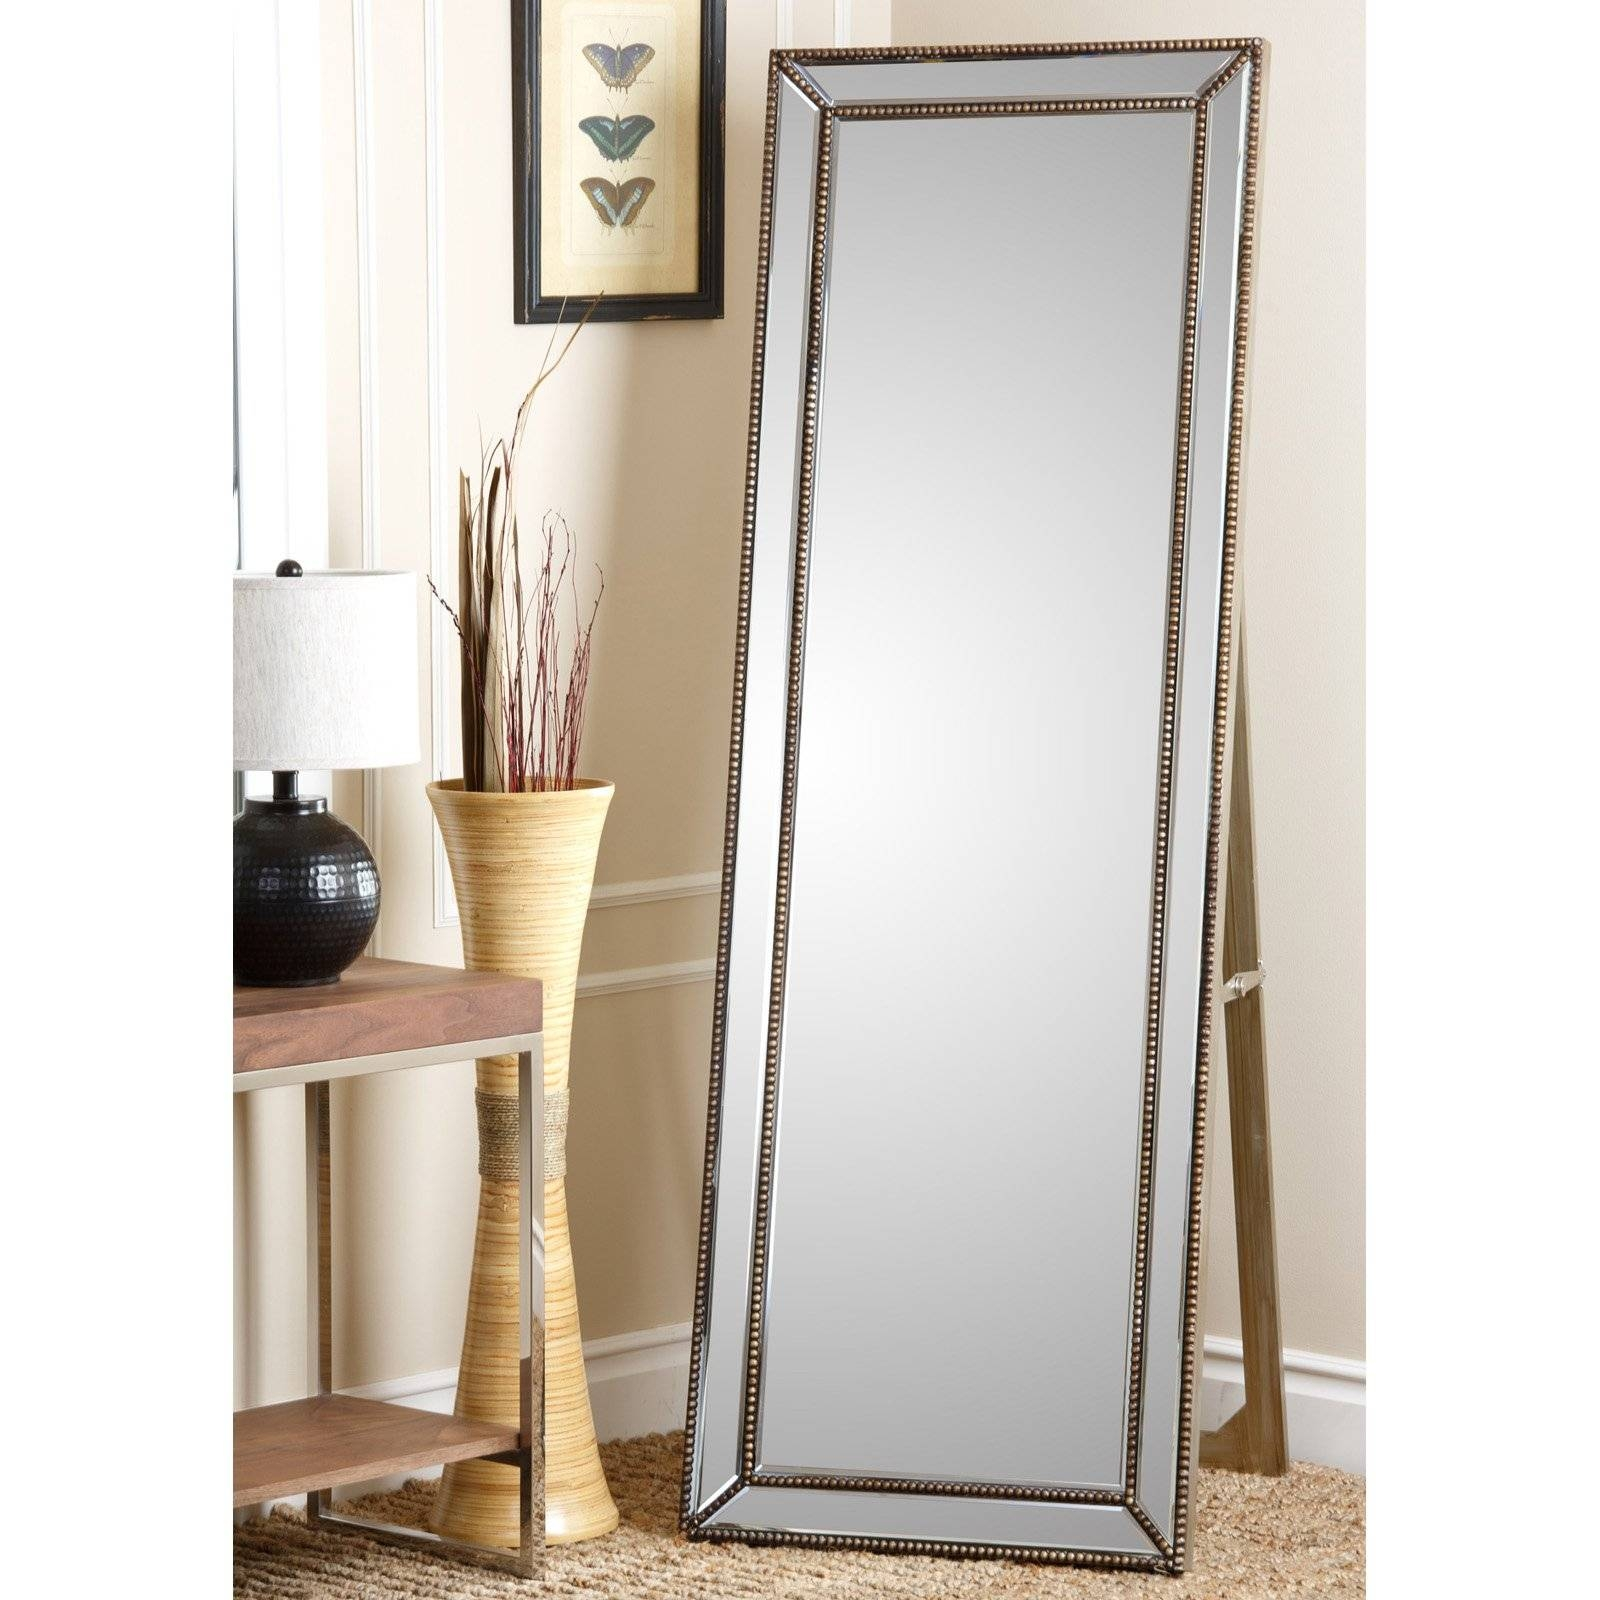 Cosmic Tarnished Gold Rectangle Cheval Floor Mirror | Hayneedle In Full Length Gold Mirrors (View 4 of 15)